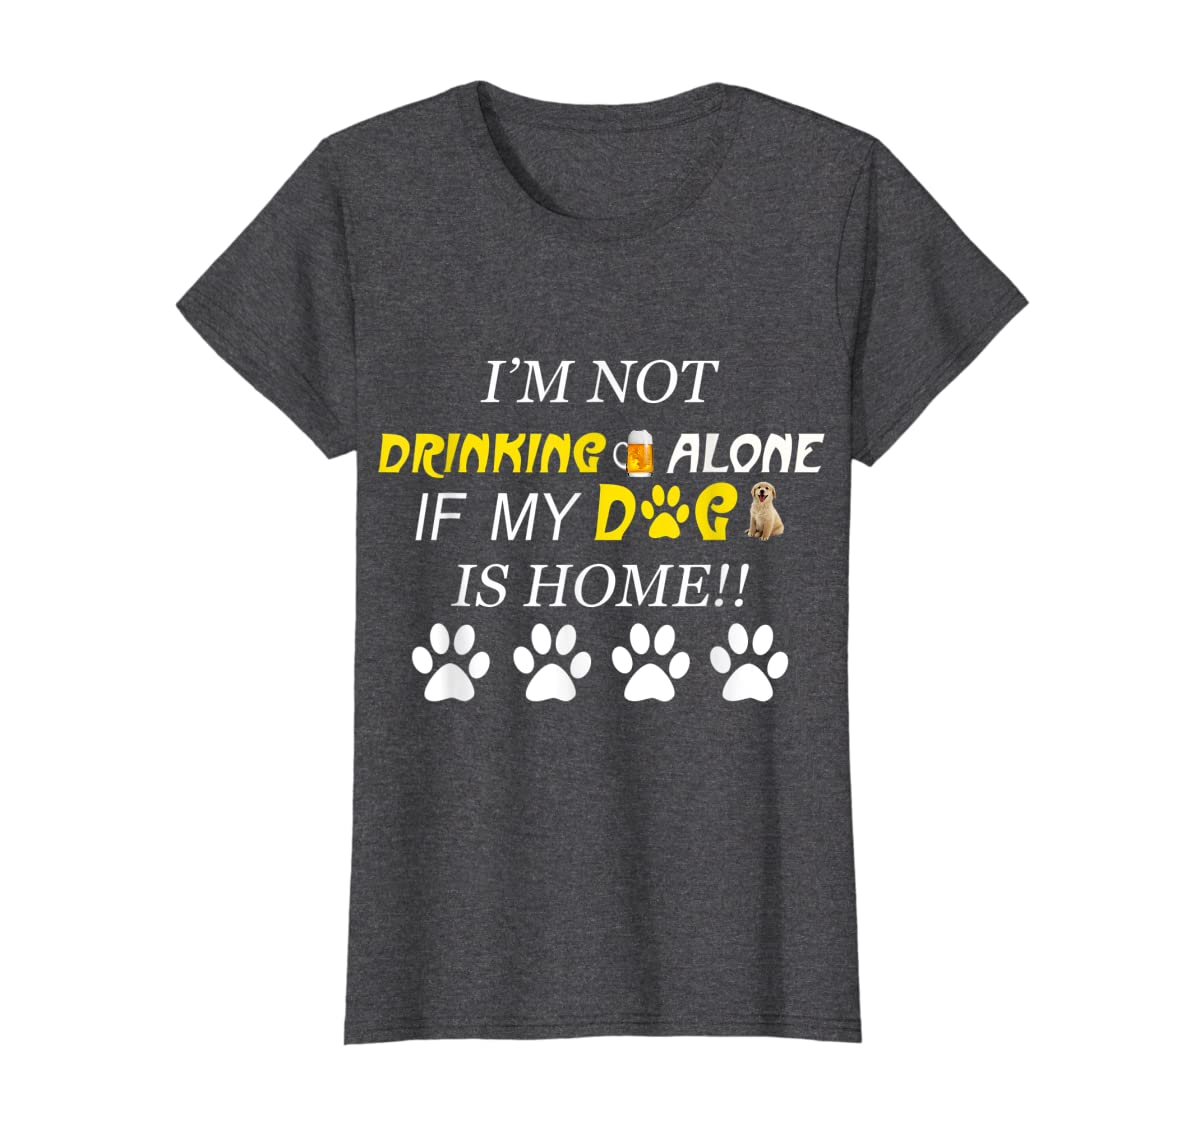 I'm Not Drinking Alone If My Dog Is Home Shirt Family Lover-Women's T-Shirt-Dark Heather